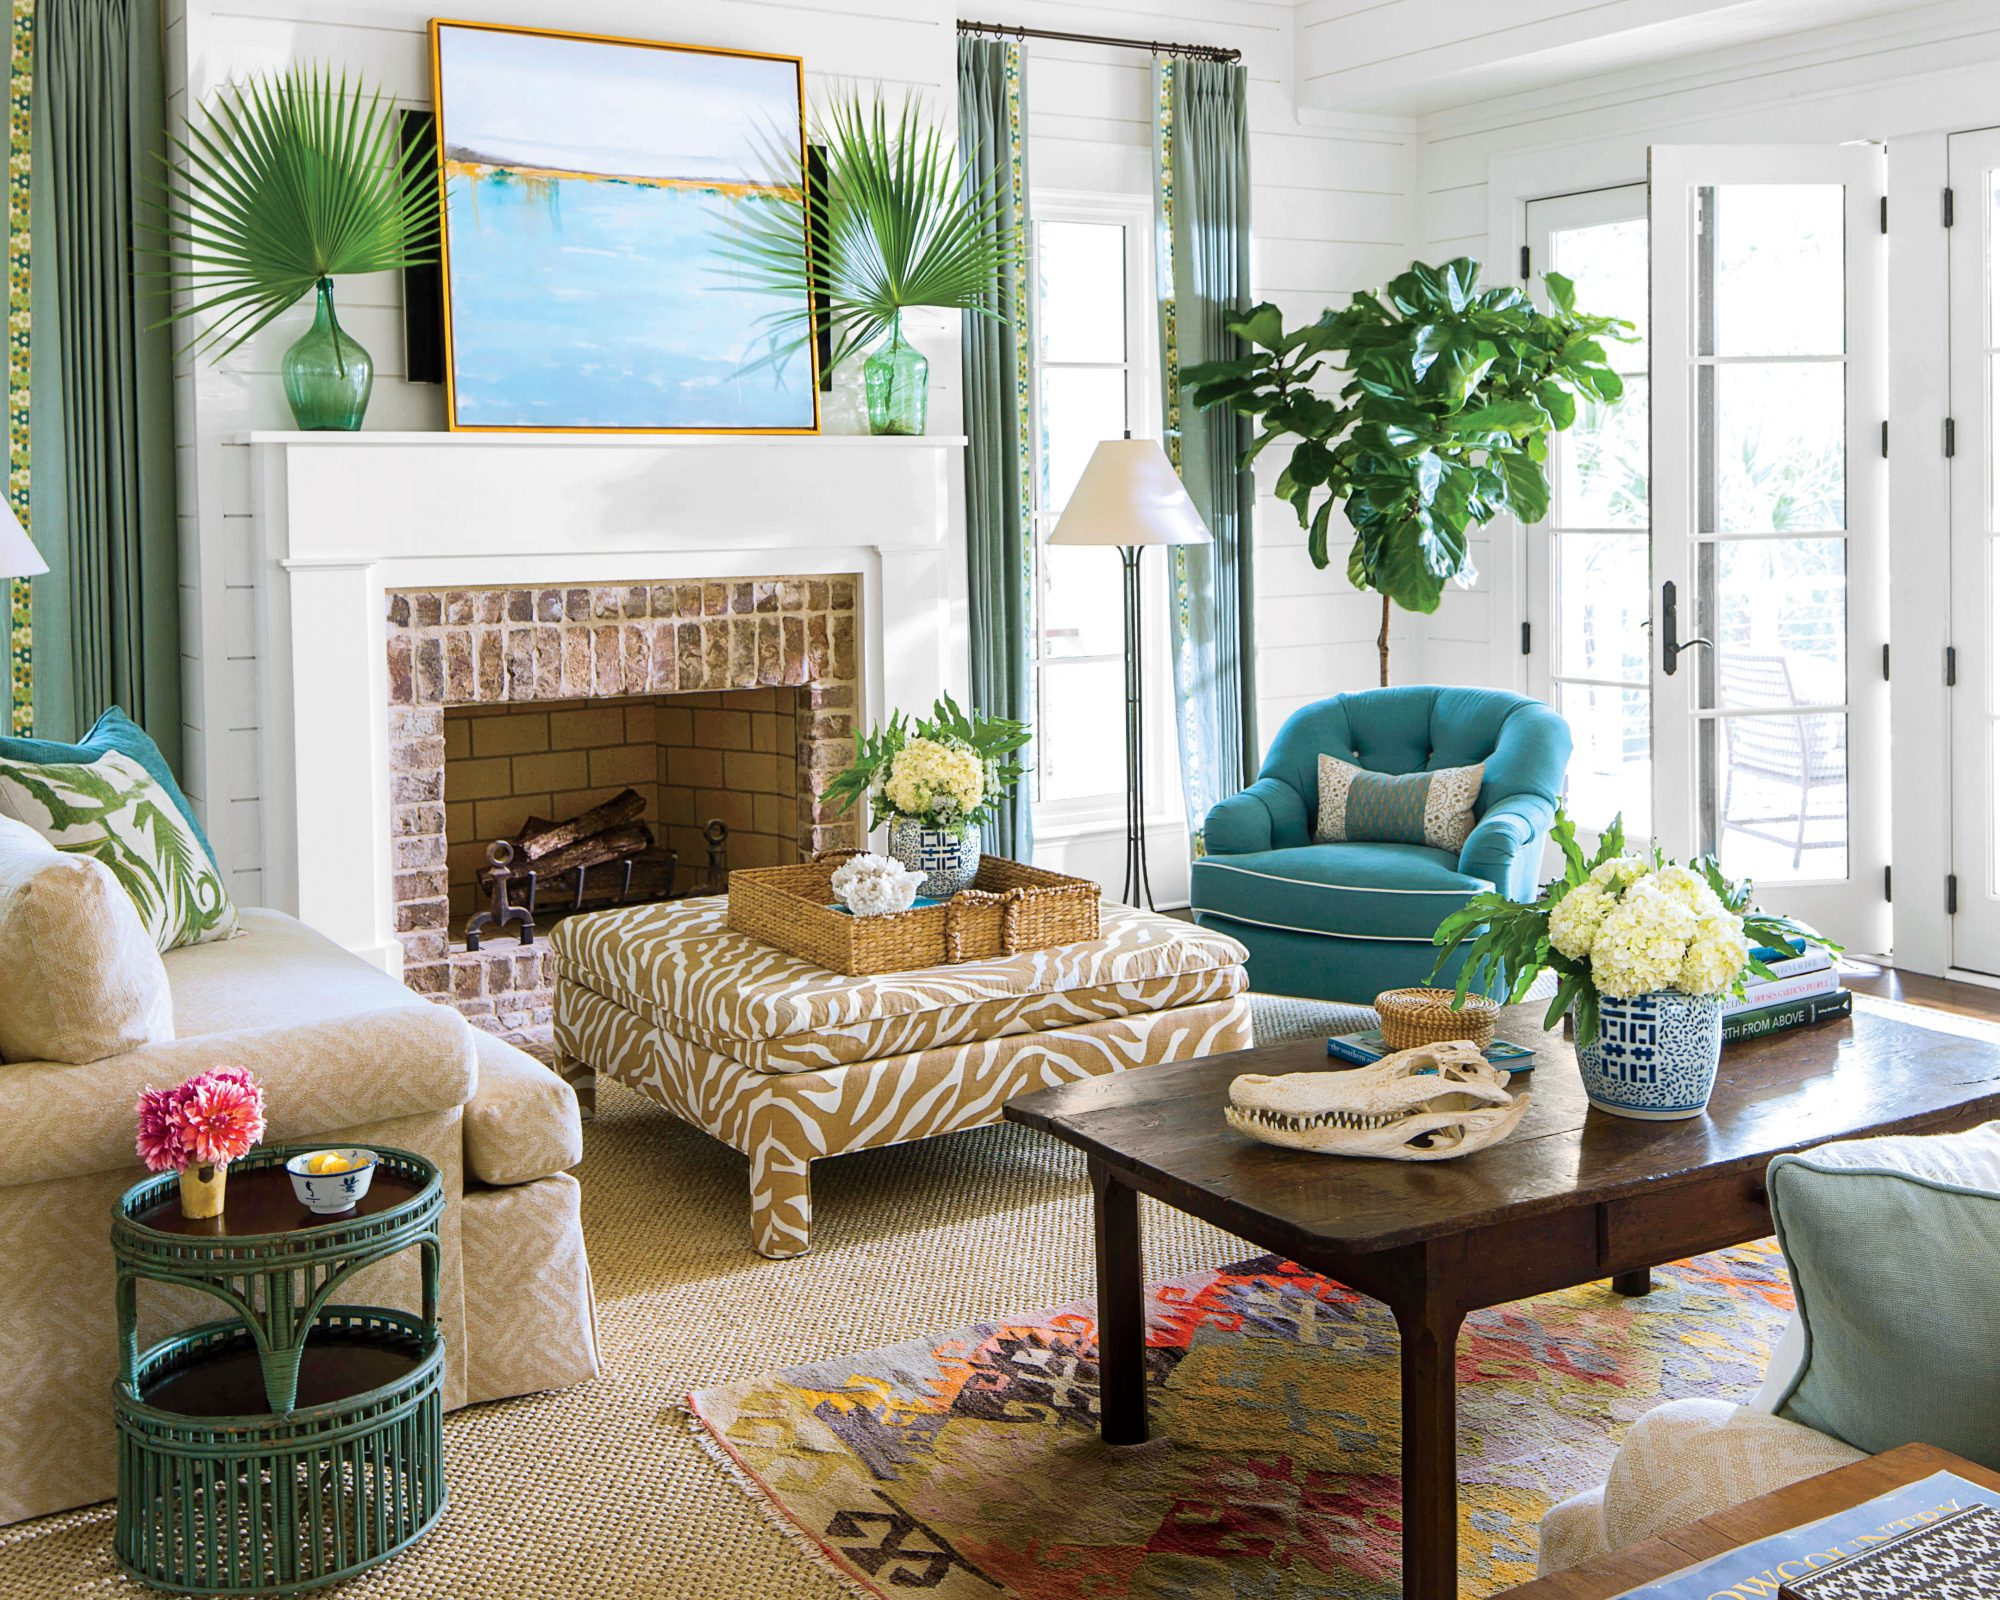 Desing A Room 106 living room decorating ideas - southern living